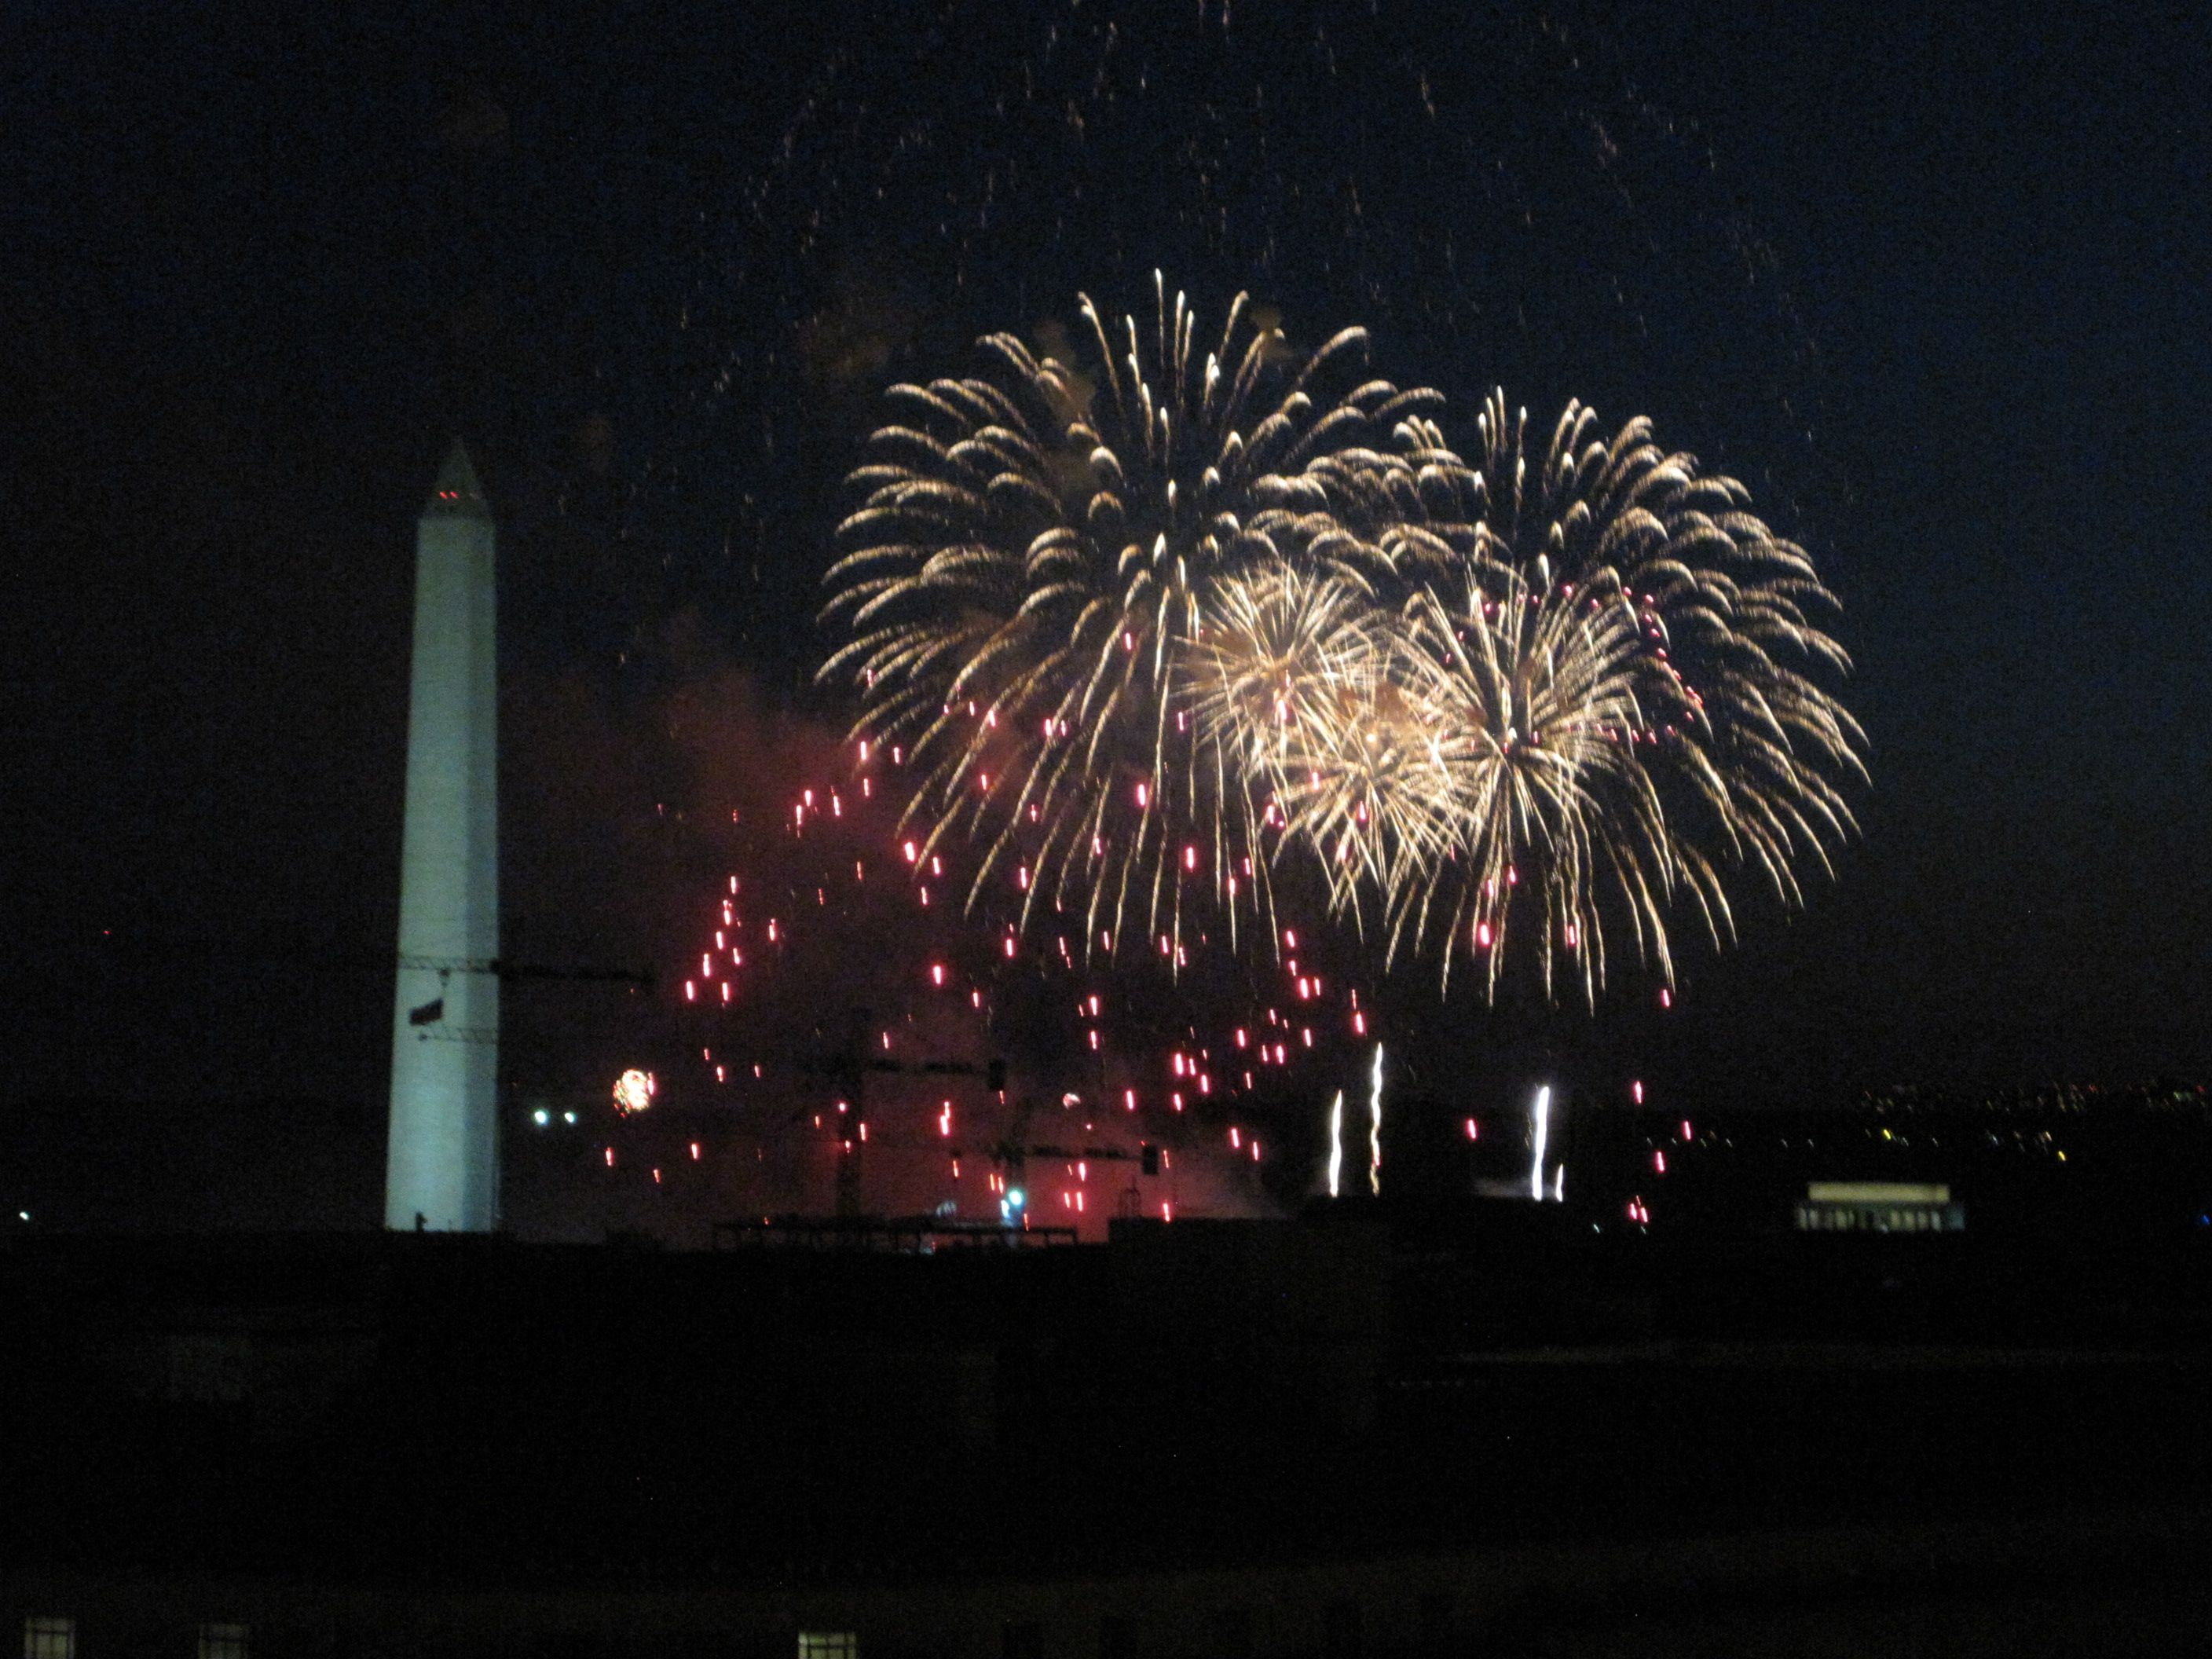 Fireworks July 4, 2014 Image 3